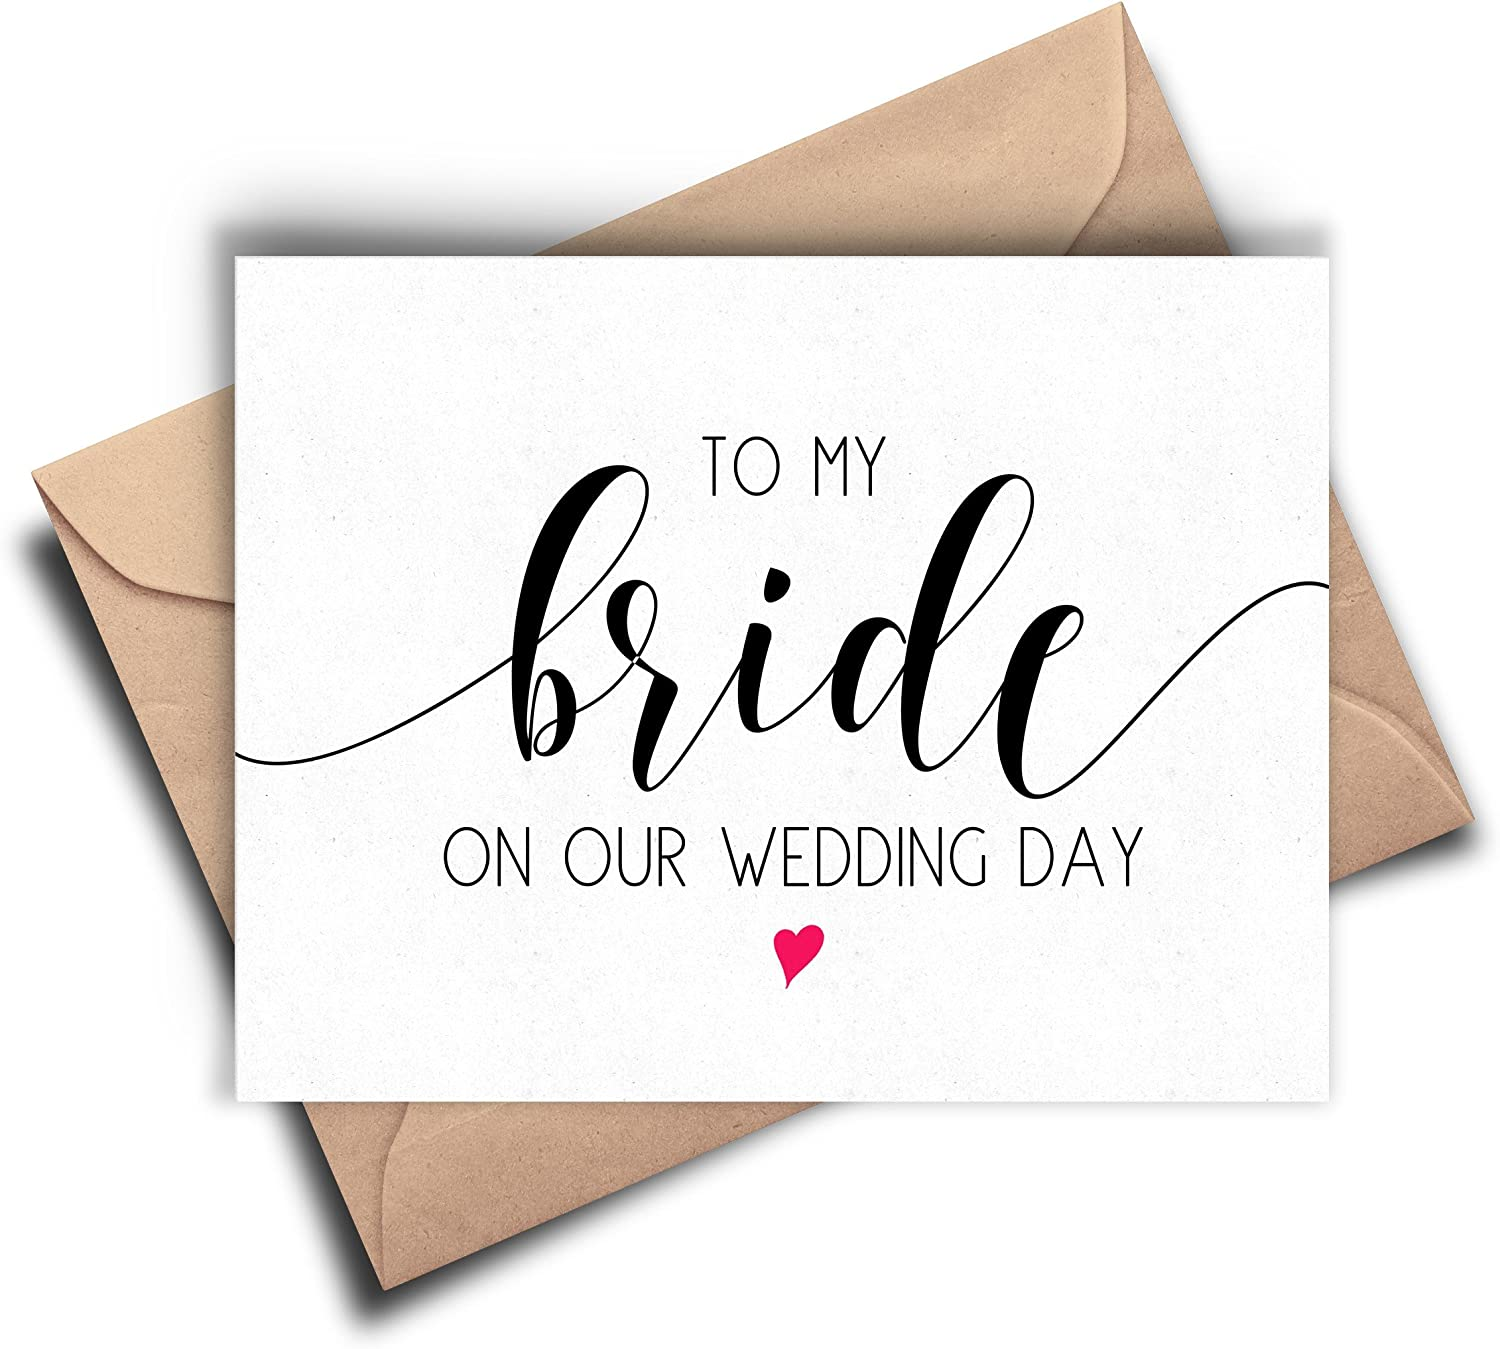 Bride Card, To My Bride On Our Wedding Day, Bride Cards from Groom